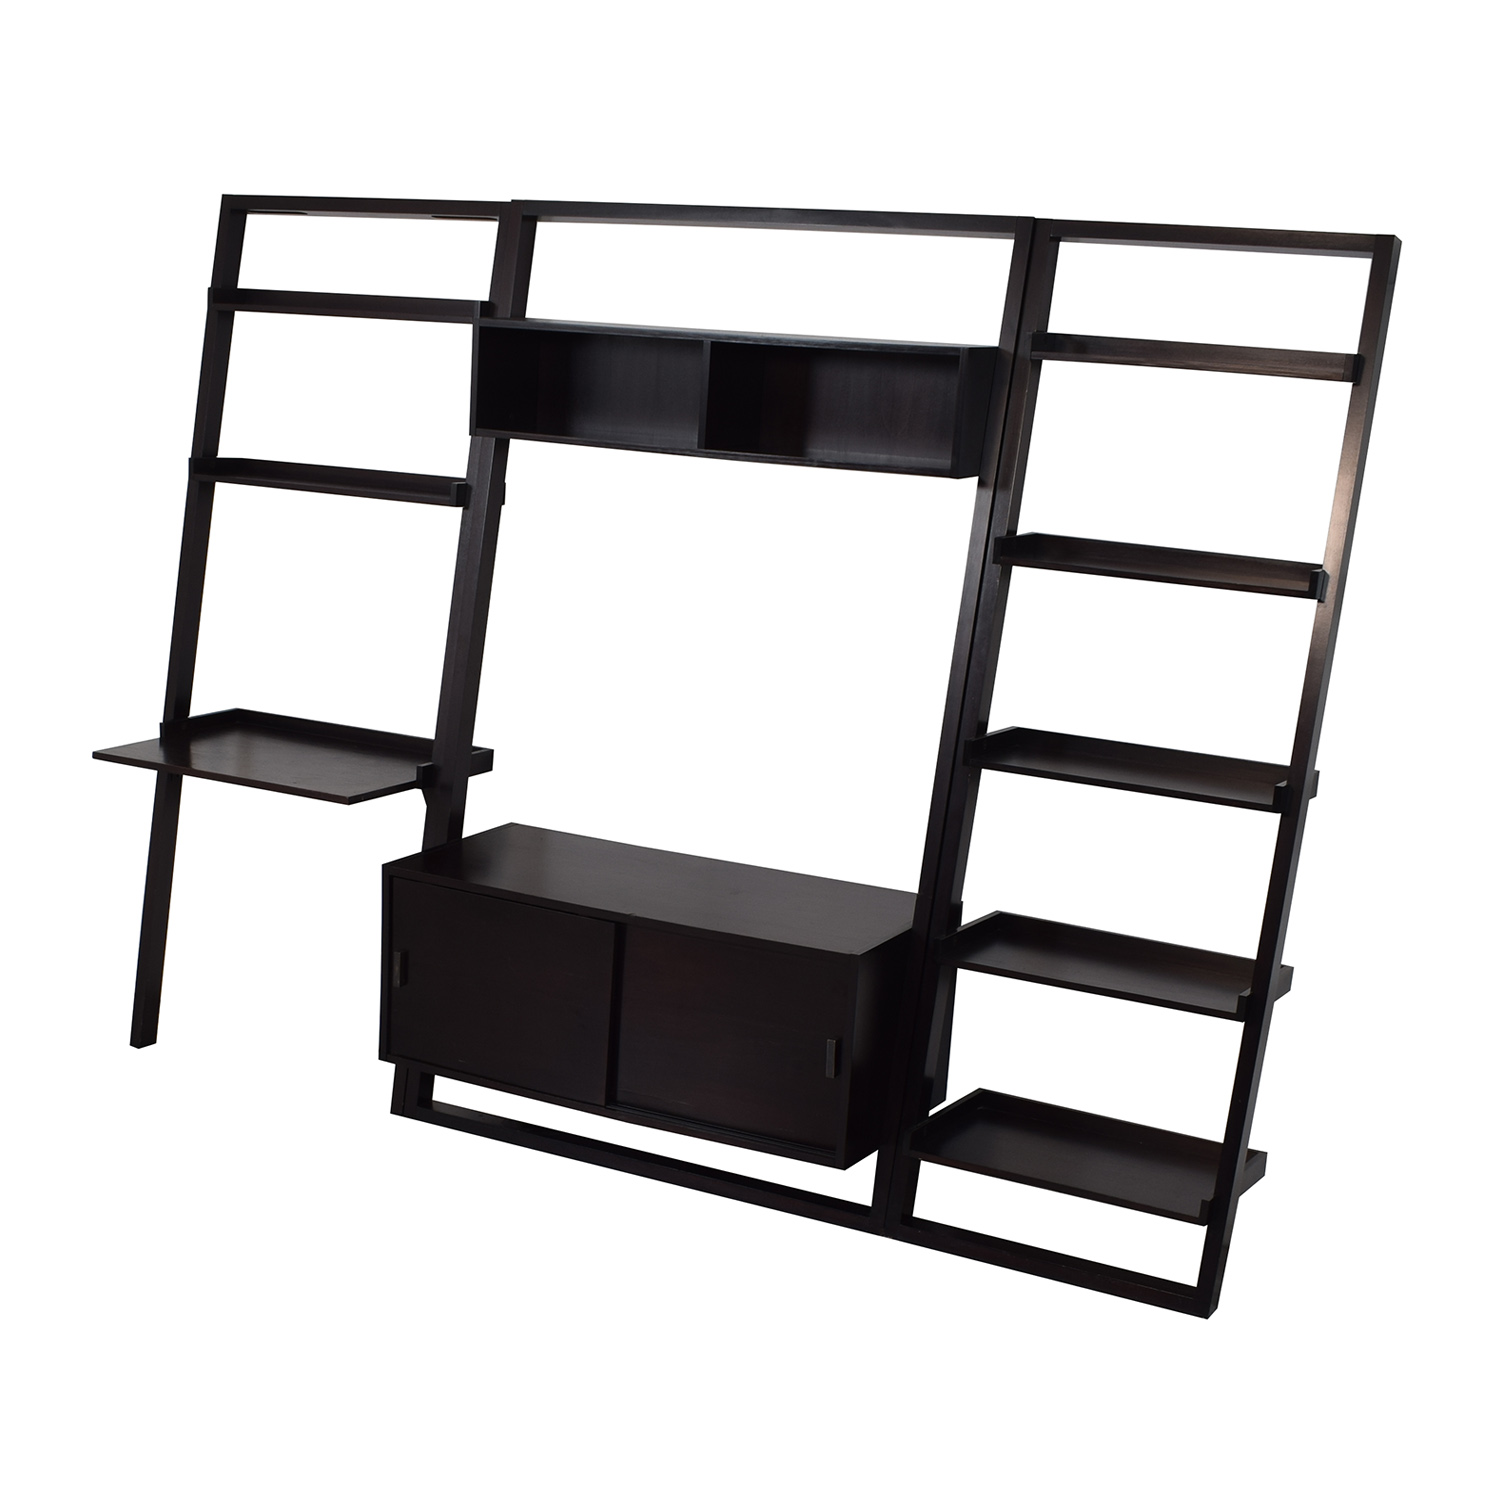 Crate & Barrel Sloane Leaning Bookcase / Storage